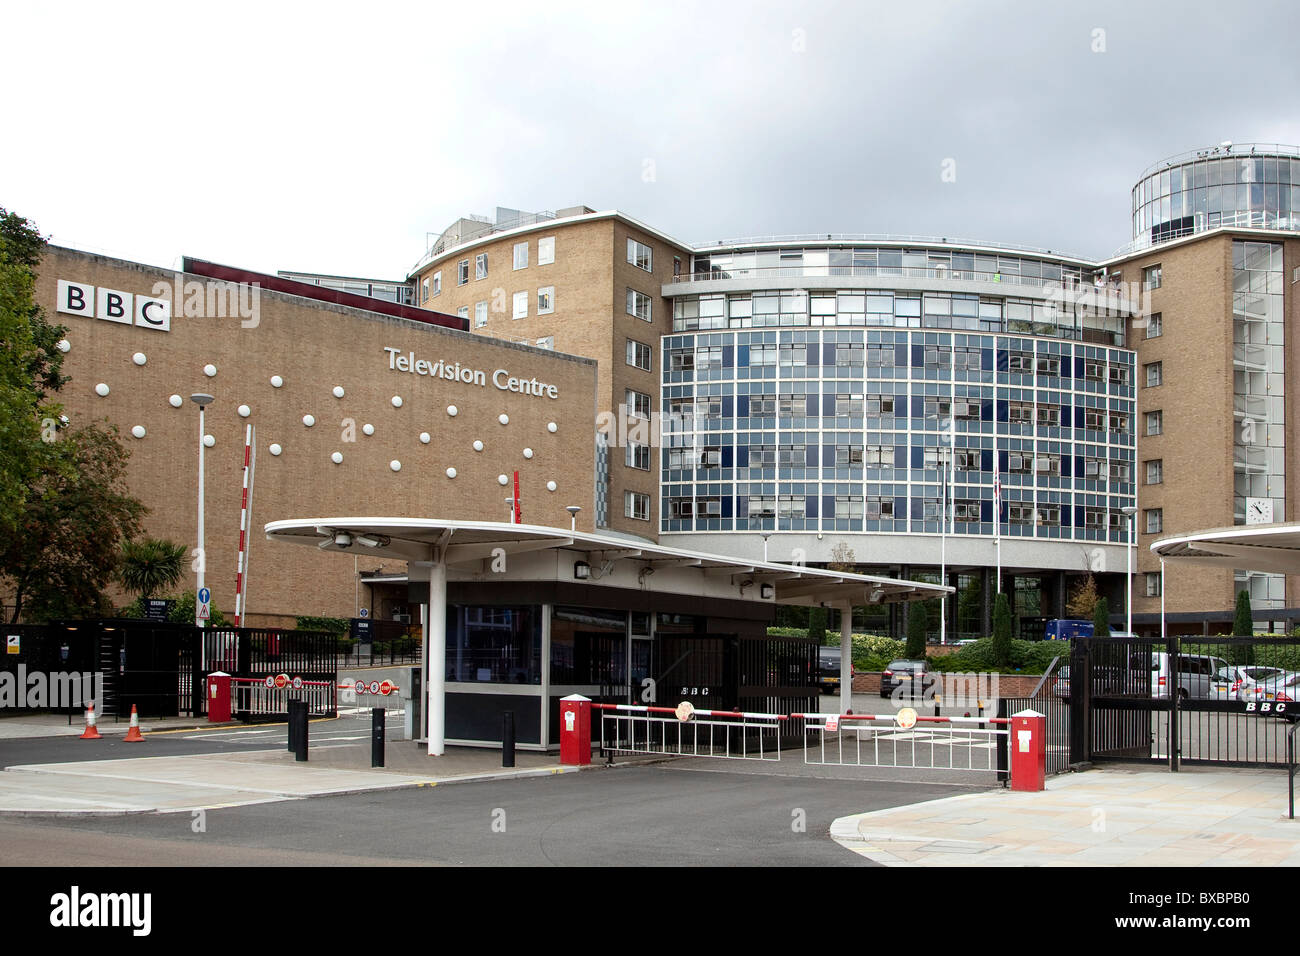 BBC TV channel, broadcasting centre in London, England, United Kingdom, Europe - Stock Image